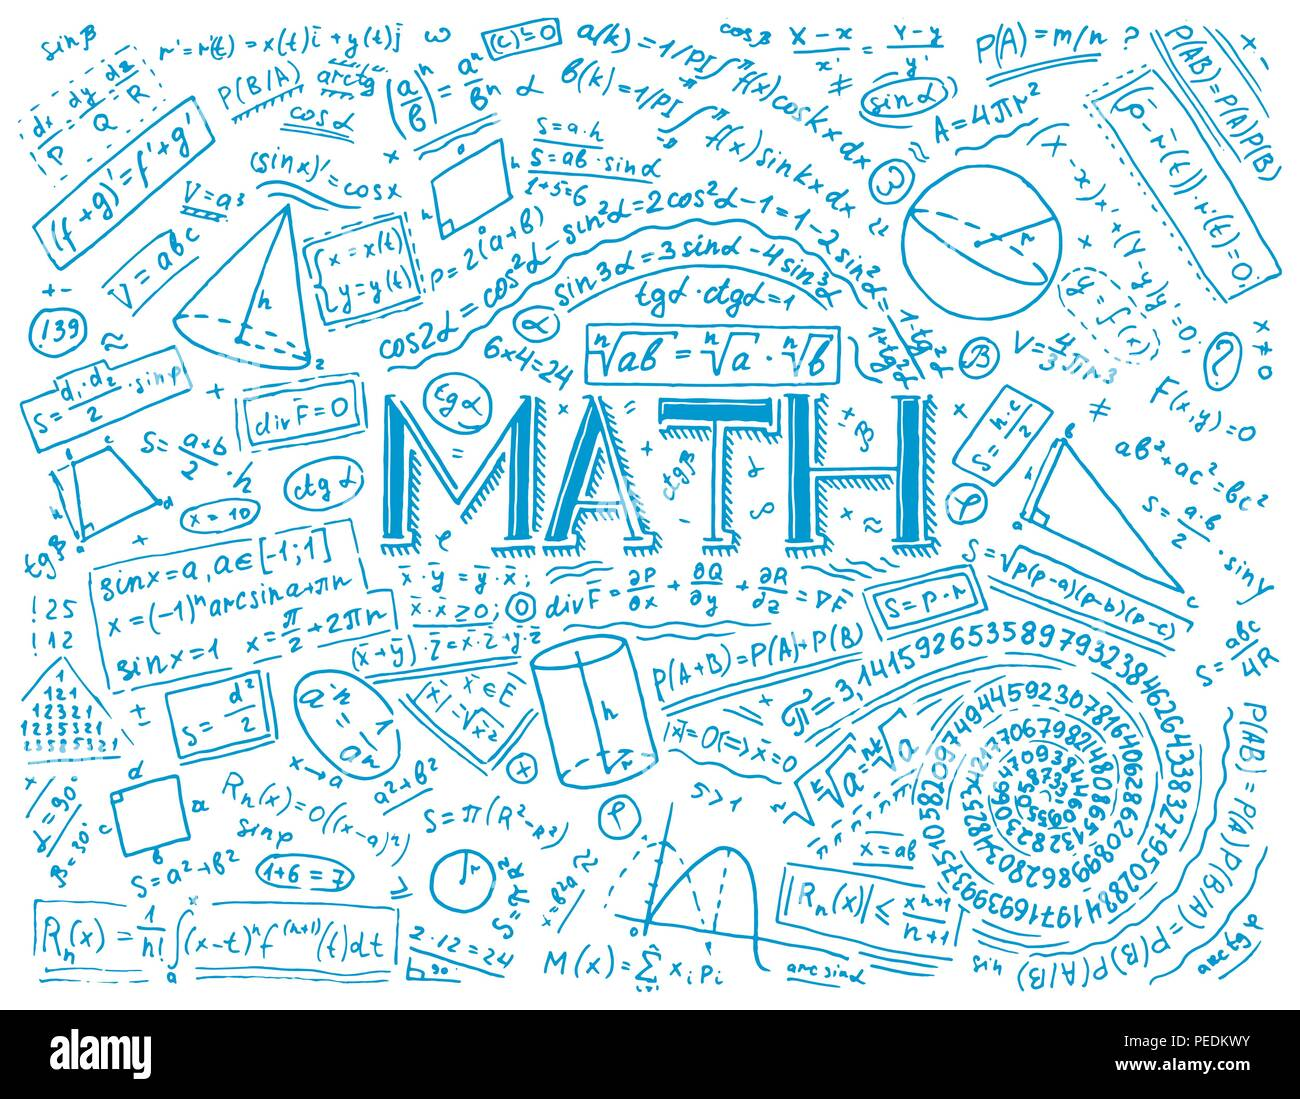 Algebra Doodle Background Stock Vector Images - Alamy